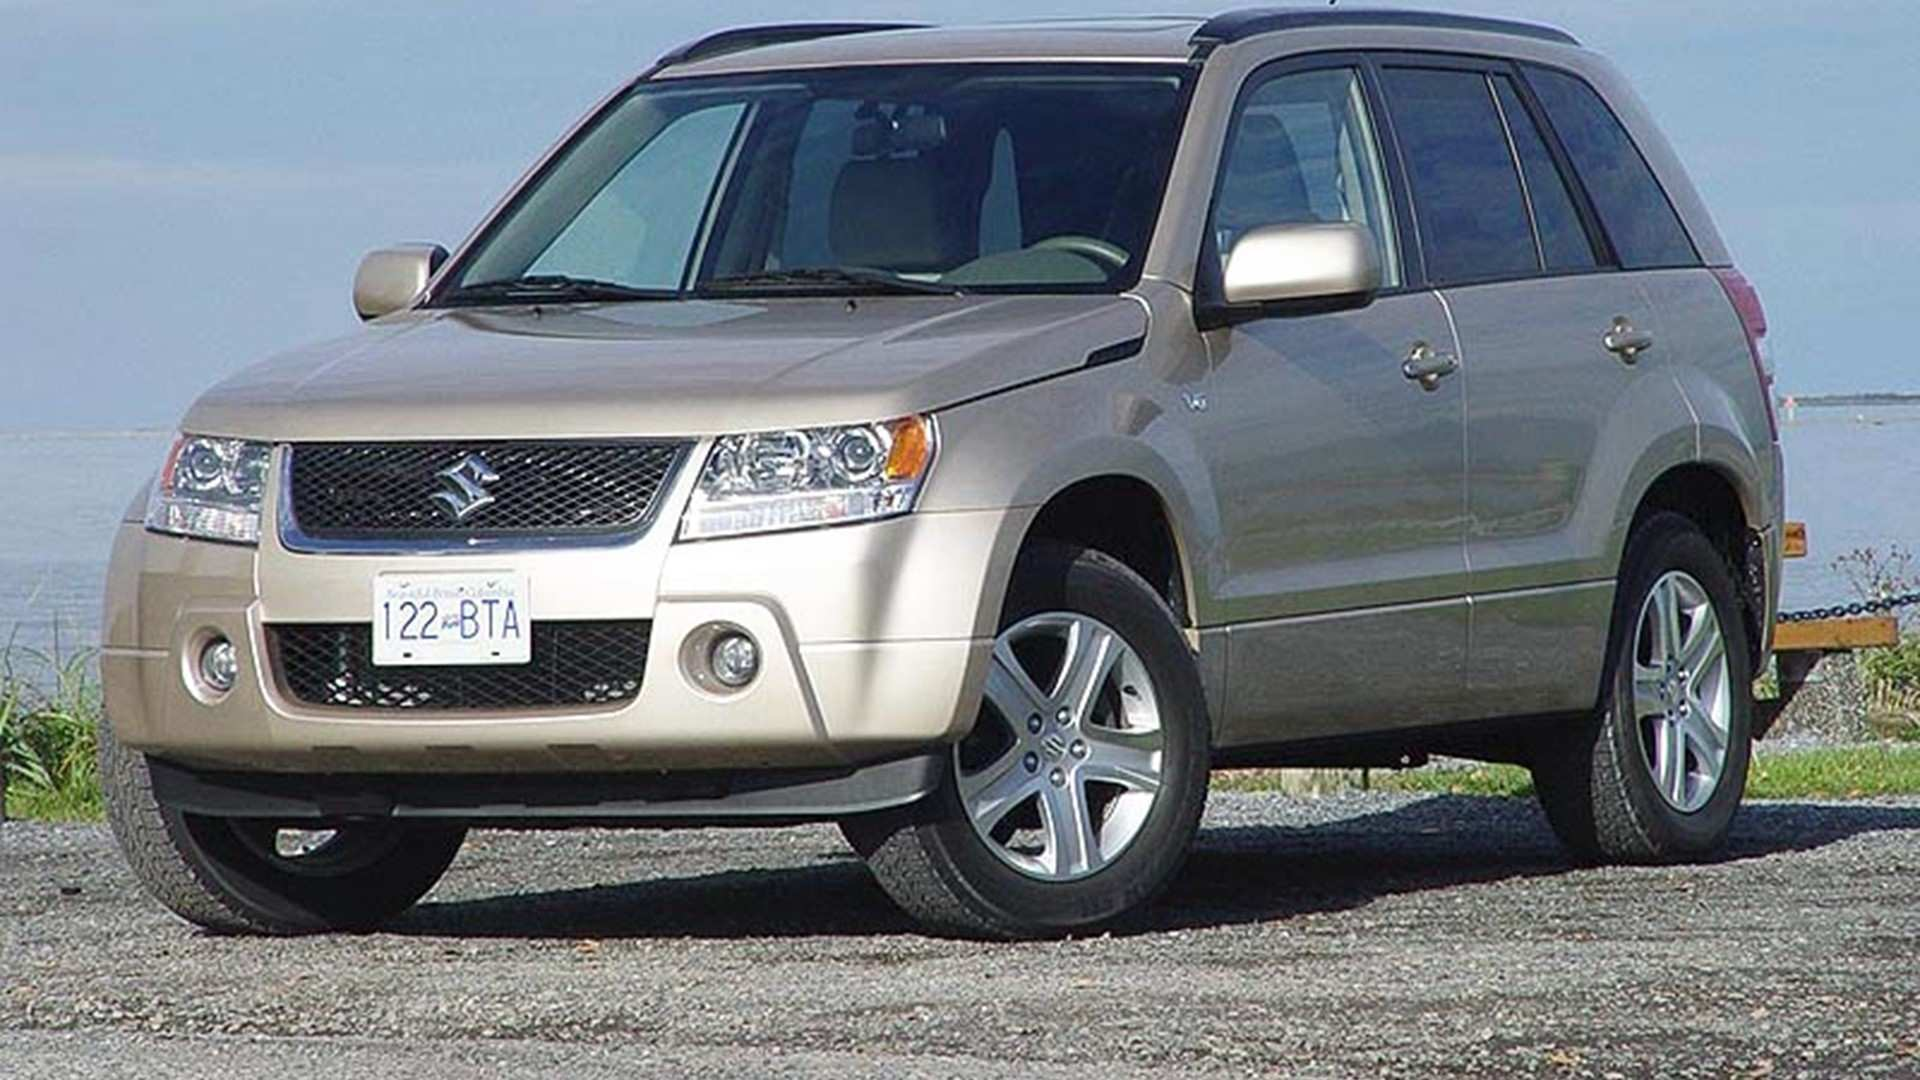 33 Best 2020 Suzuki Grand Vitara Preview Spy Shoot